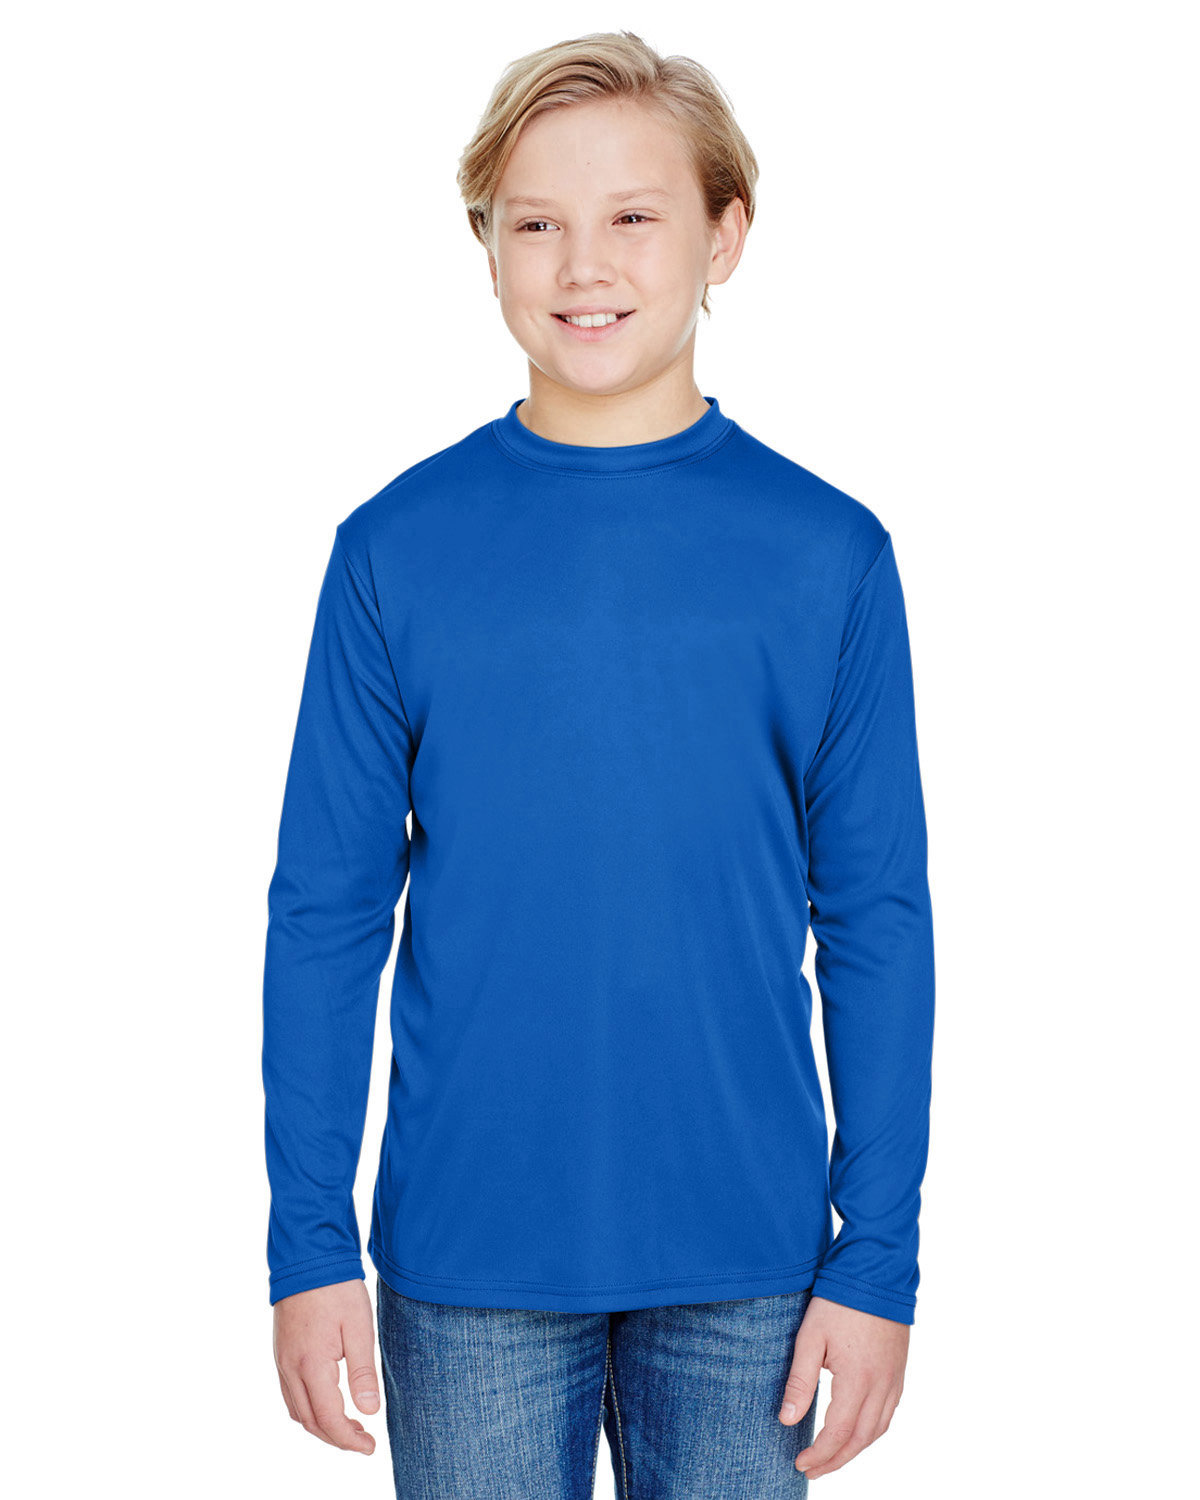 A4 Youth Long Sleeve Cooling Performance Crew Shirt ROYAL